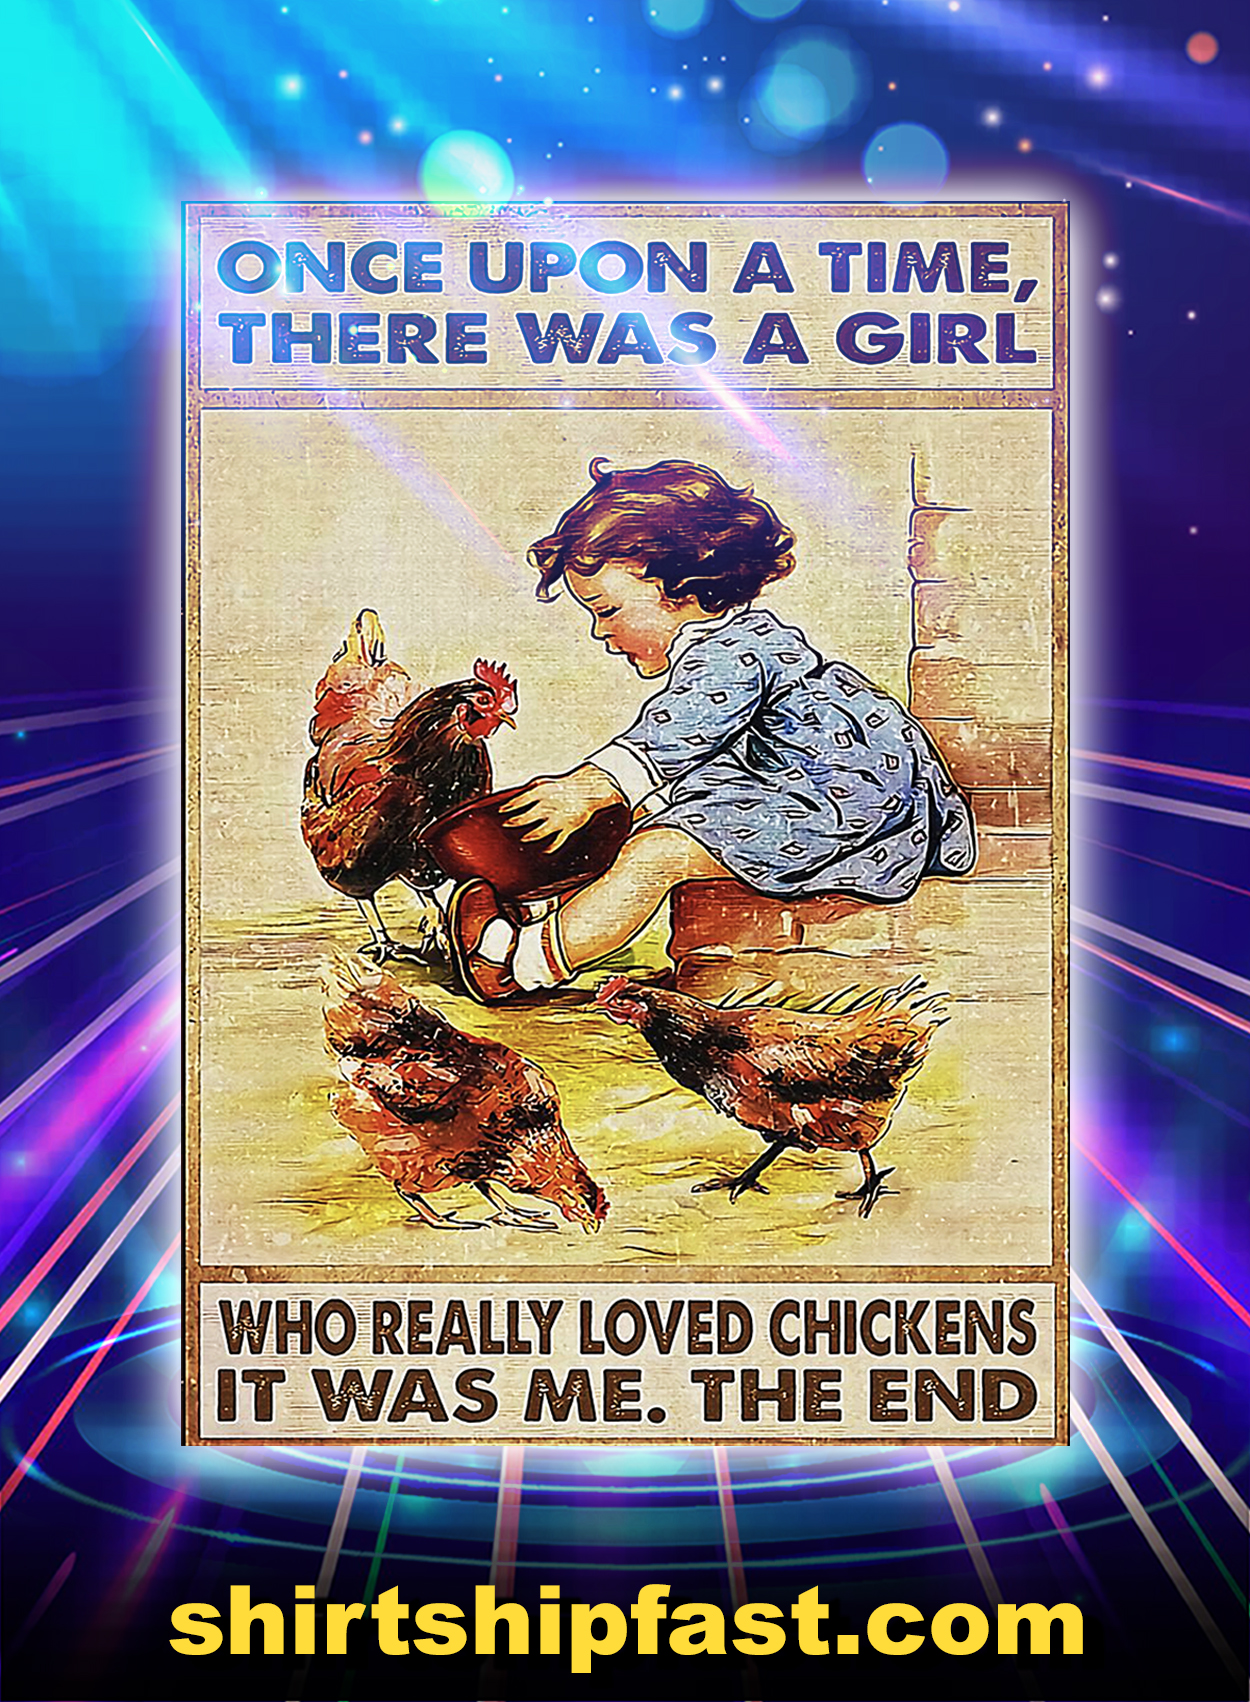 Once upon a time there was a girl who really loved chickens poster - A2